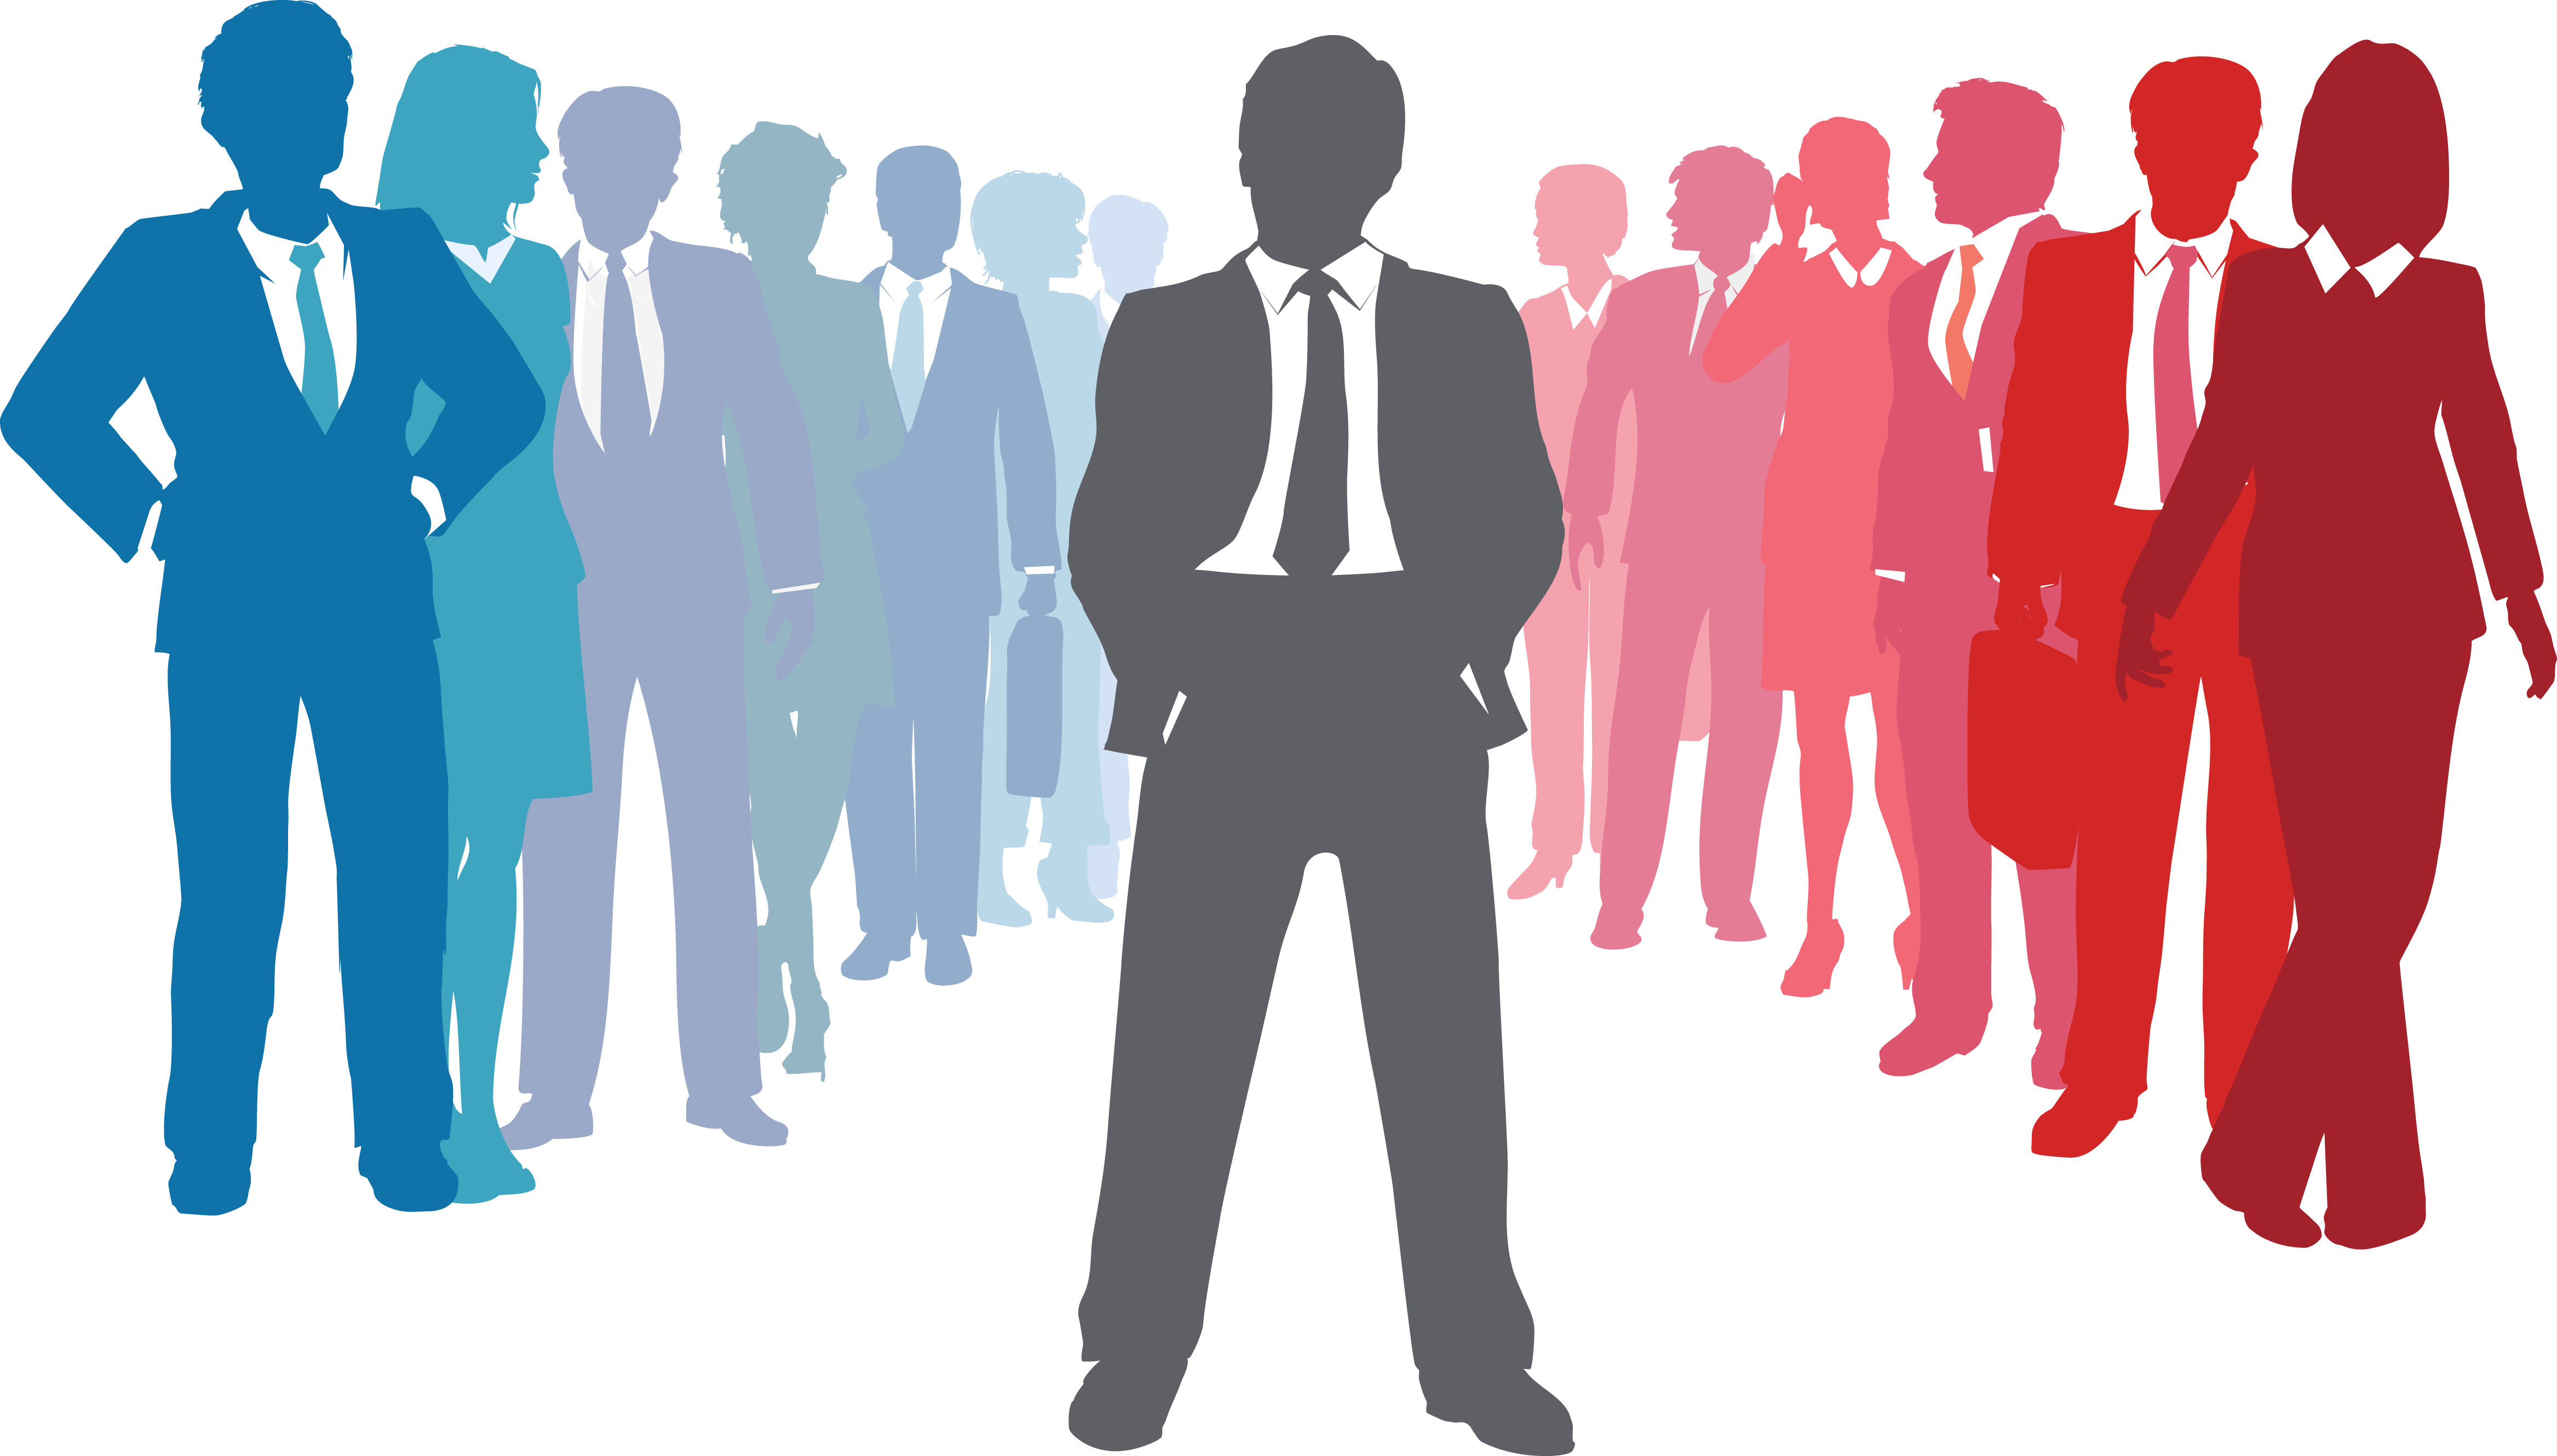 leadership clipart at getdrawings com free for personal use rh getdrawings com leadership clip art images leadership clip art images